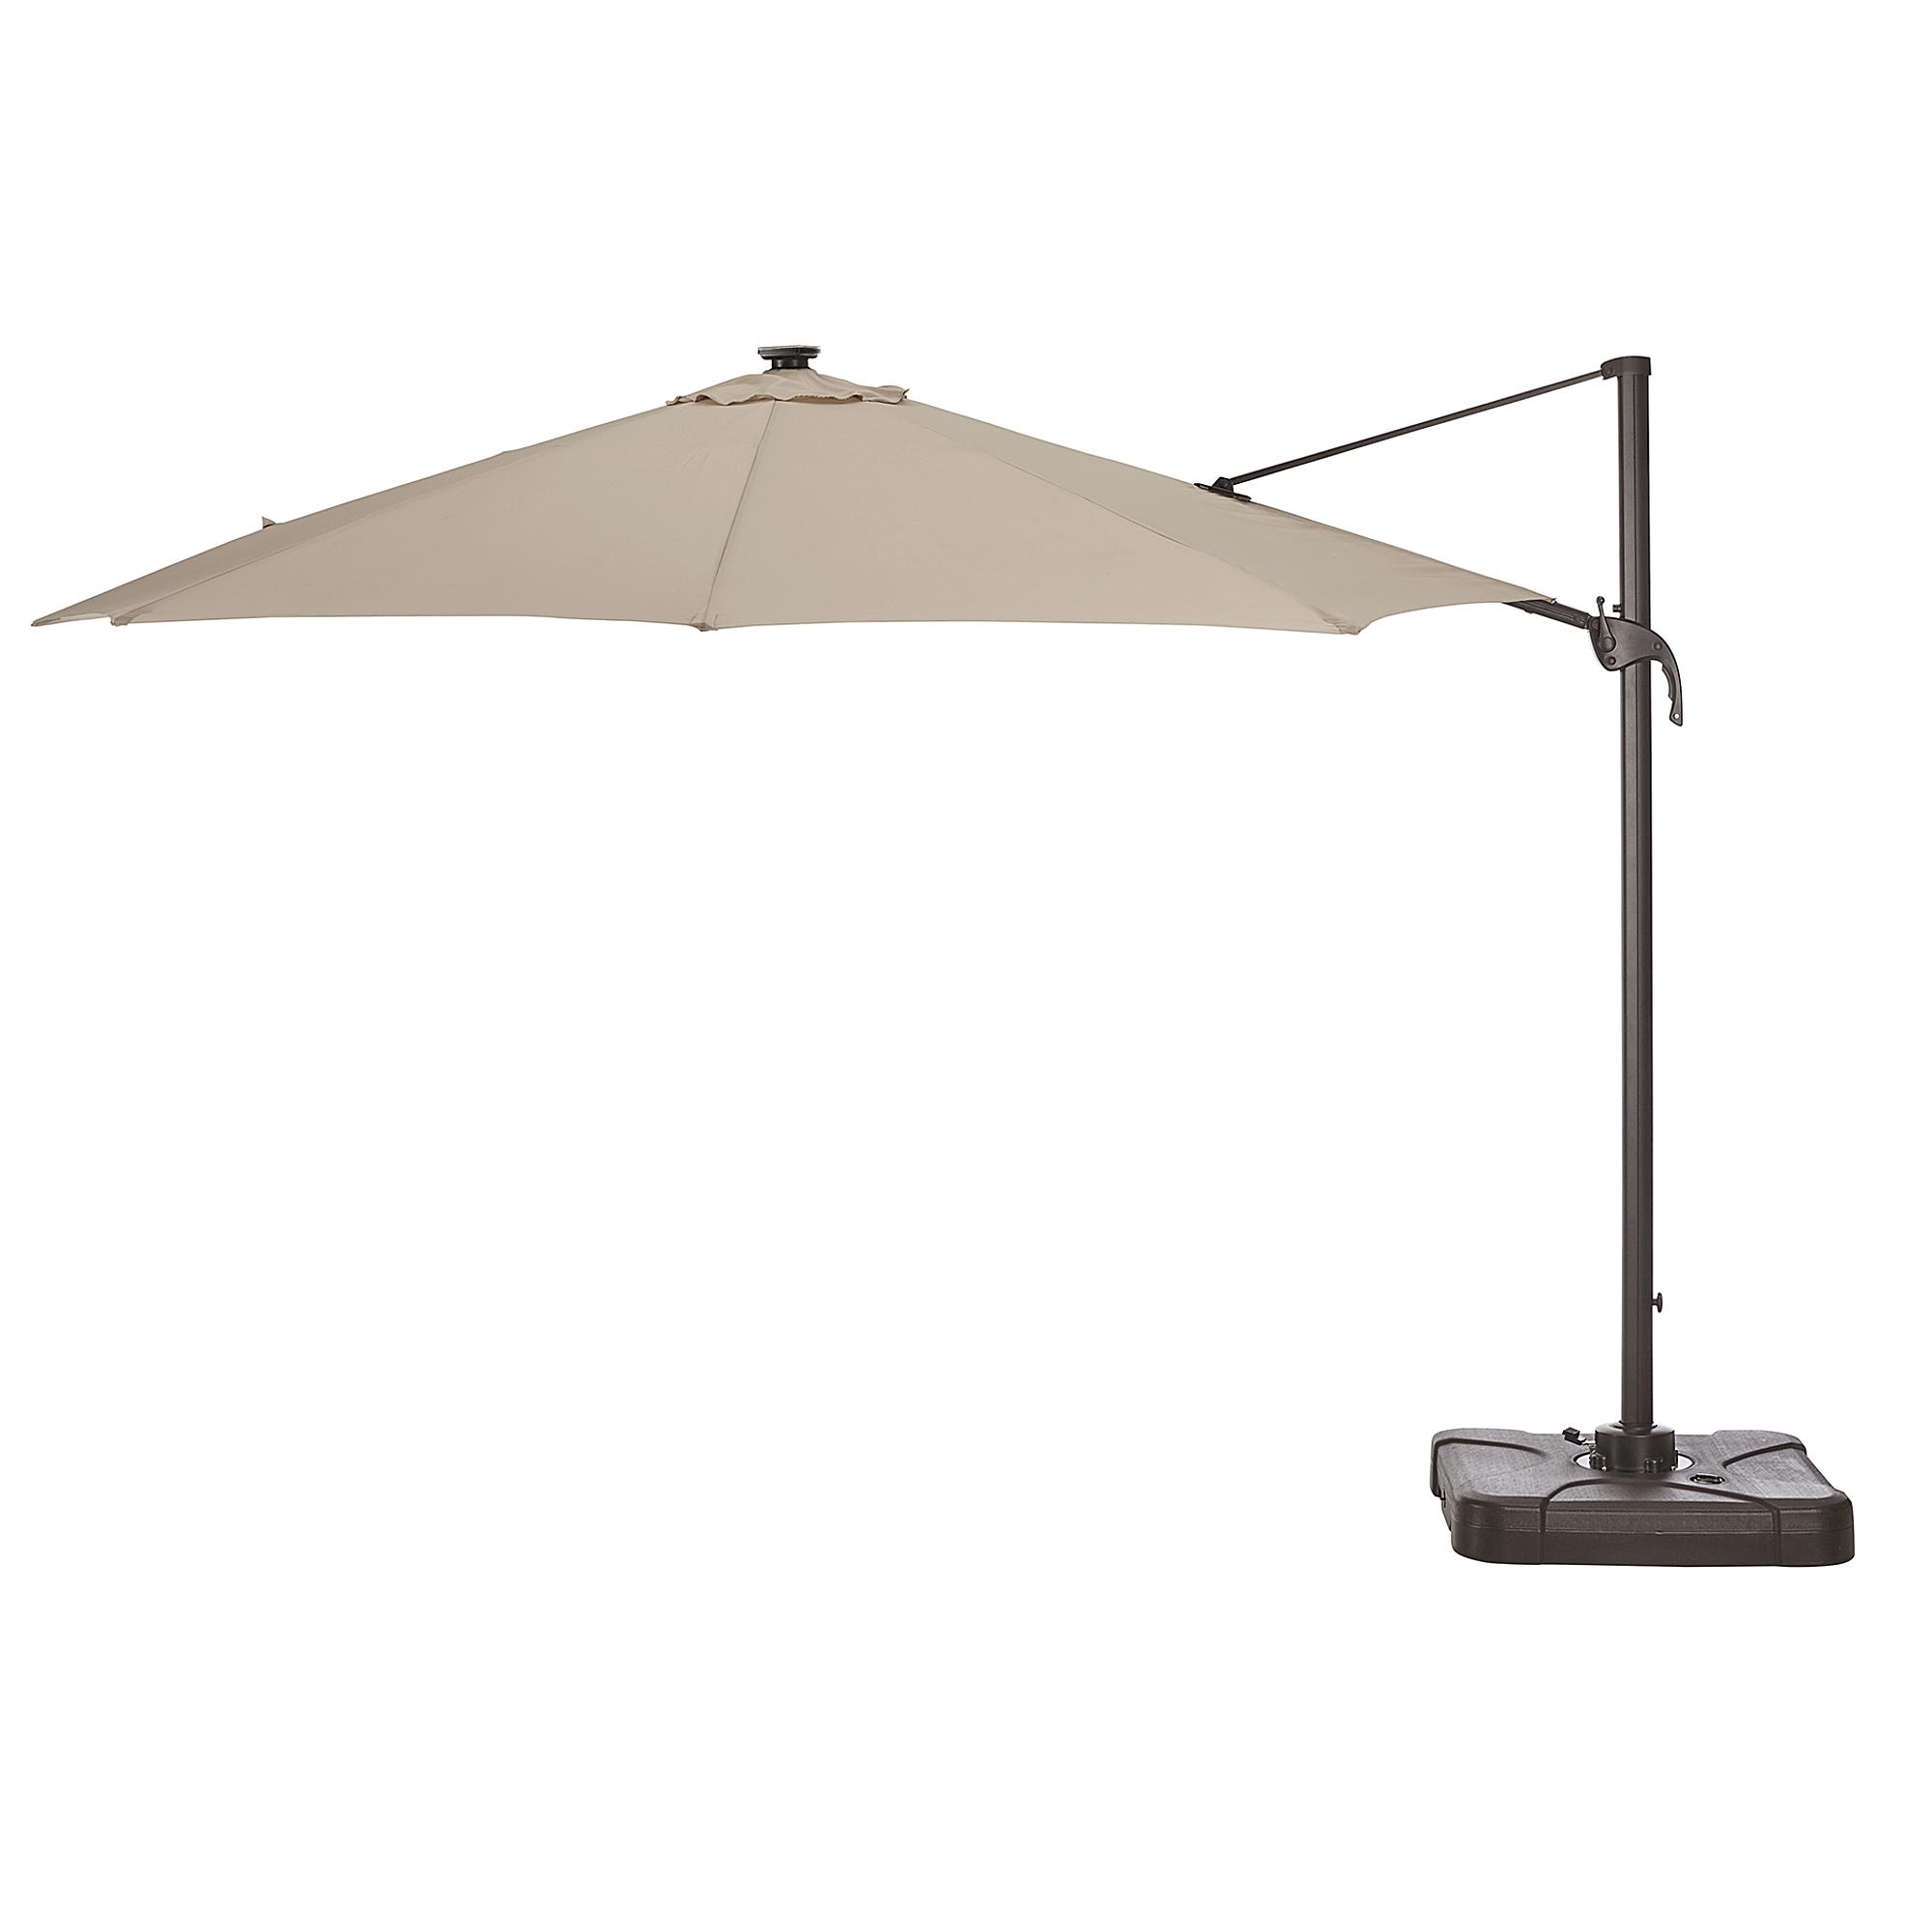 Replacement Umbrella Canopy – Garden Winds Intended For Famous Sears Patio Umbrellas (Gallery 13 of 20)